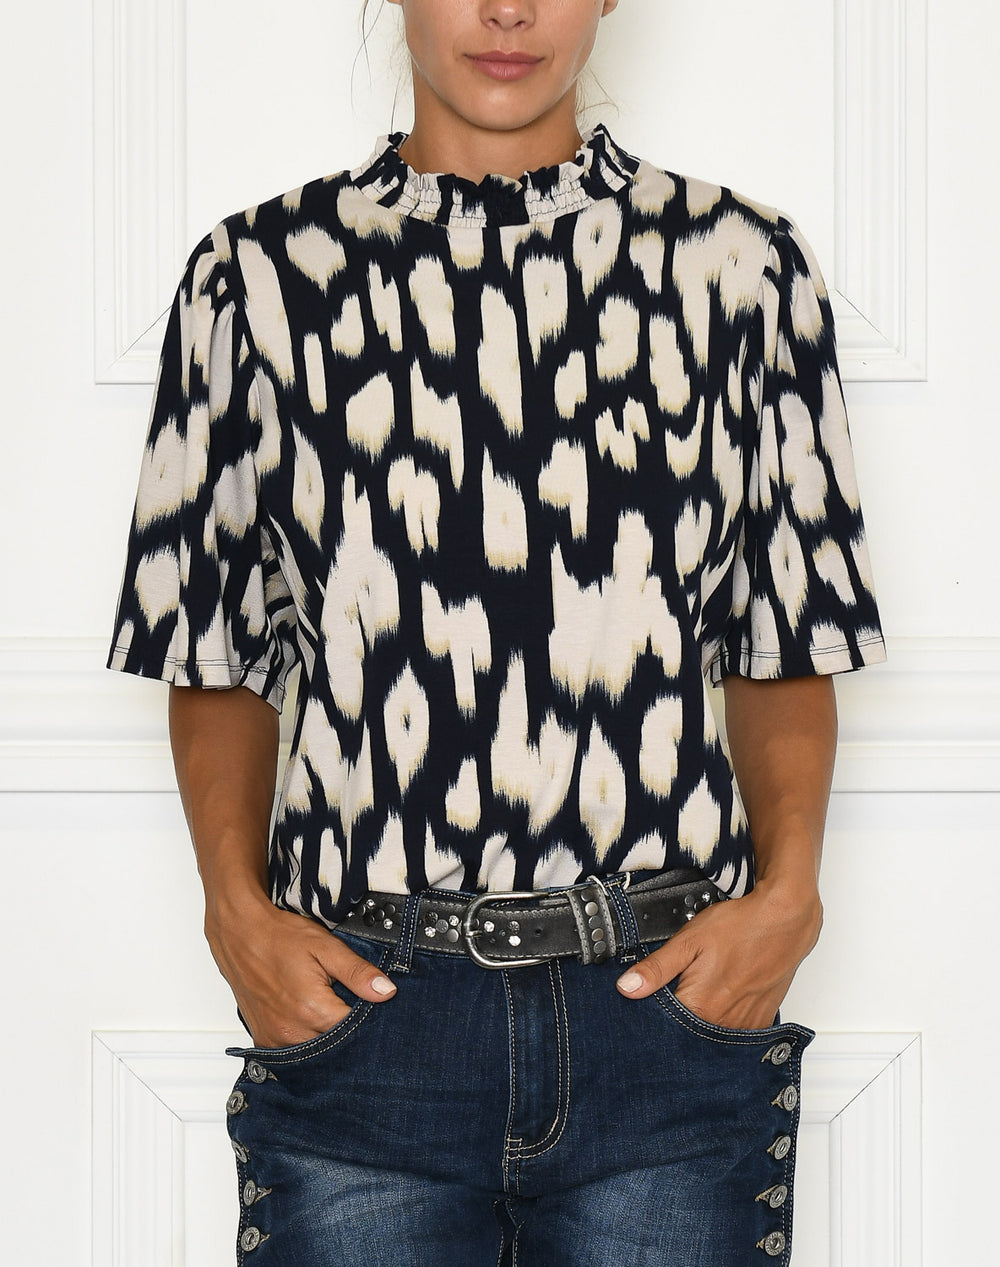 Saint Tropez Cam blouse blue deep animal skin